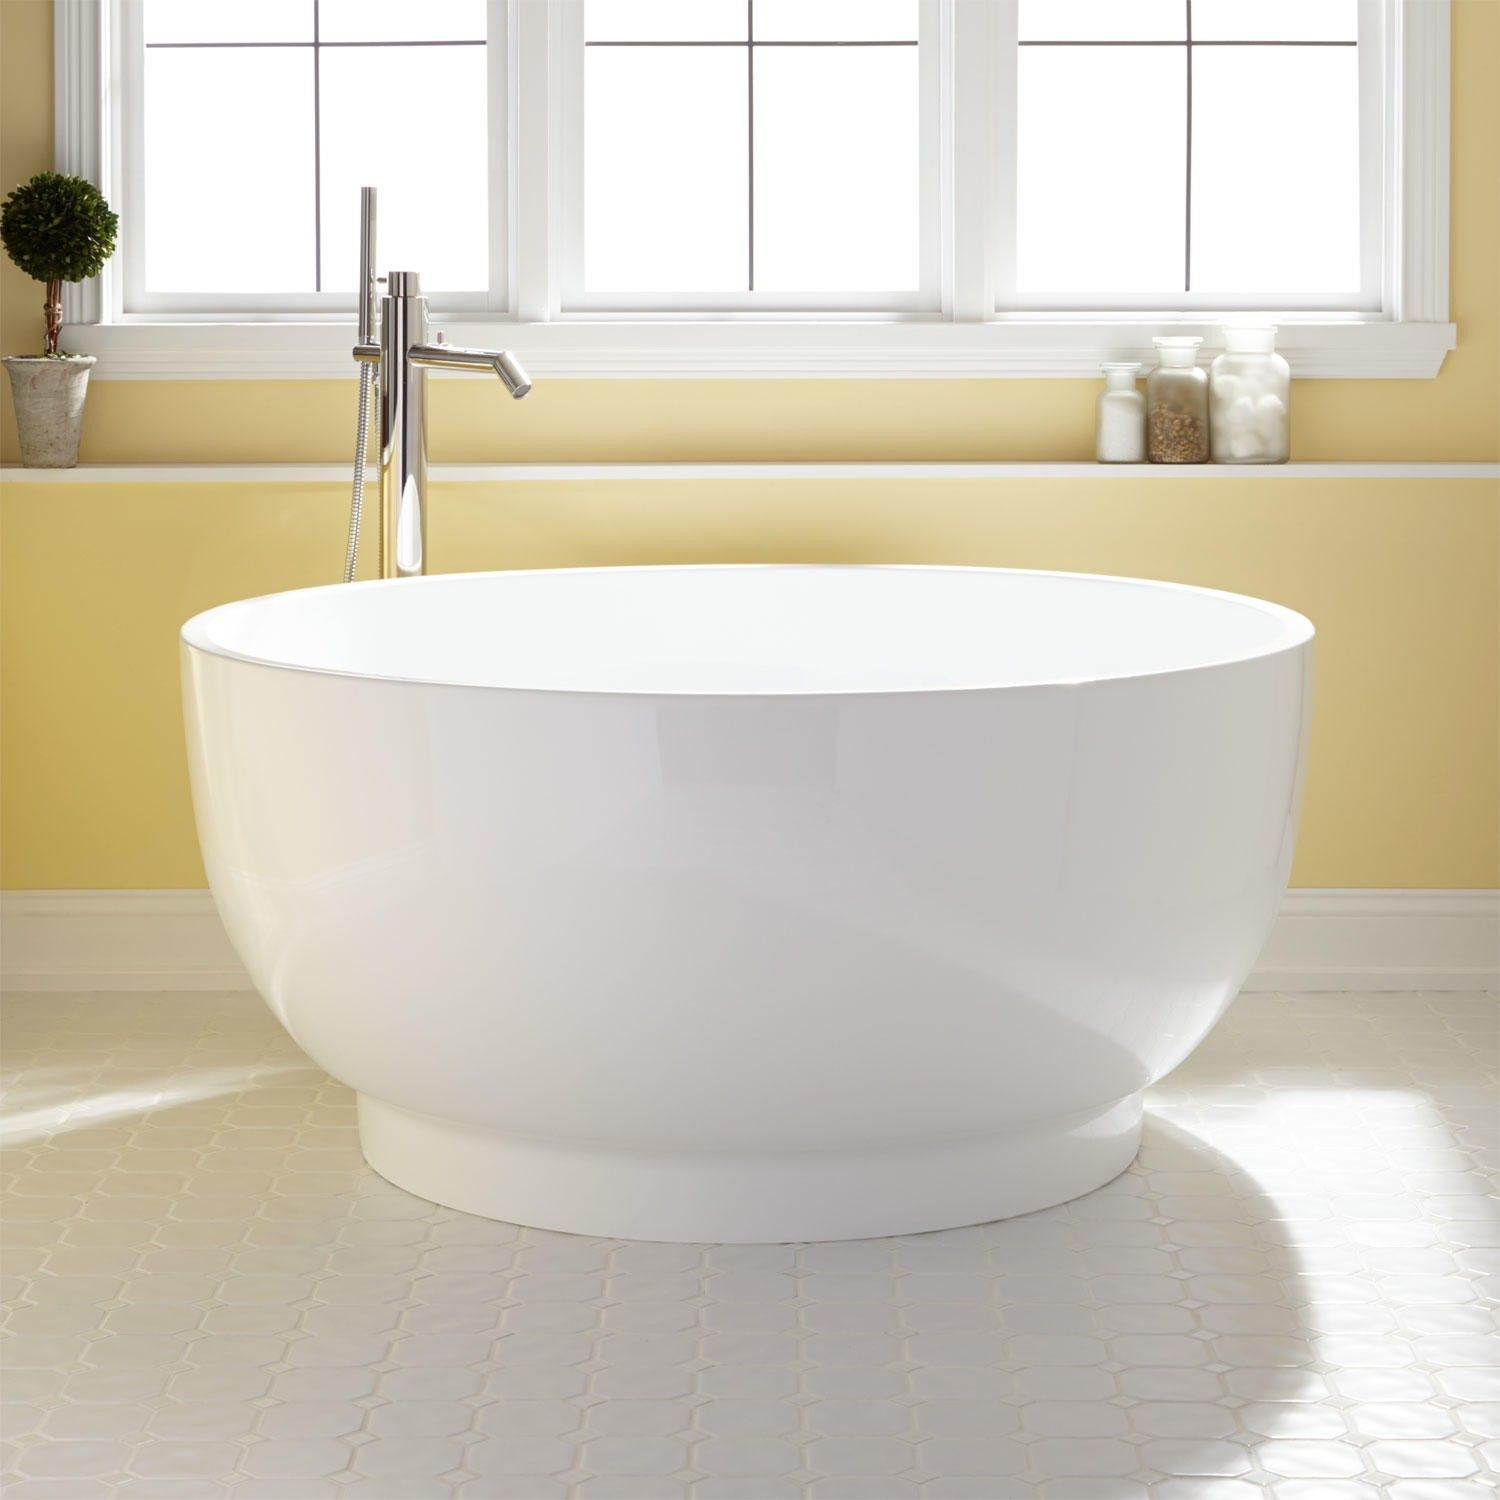 51 kaimu acrylic japanese soaking tub japanese soaking tubs tubs and bath - Small soaking tub ...